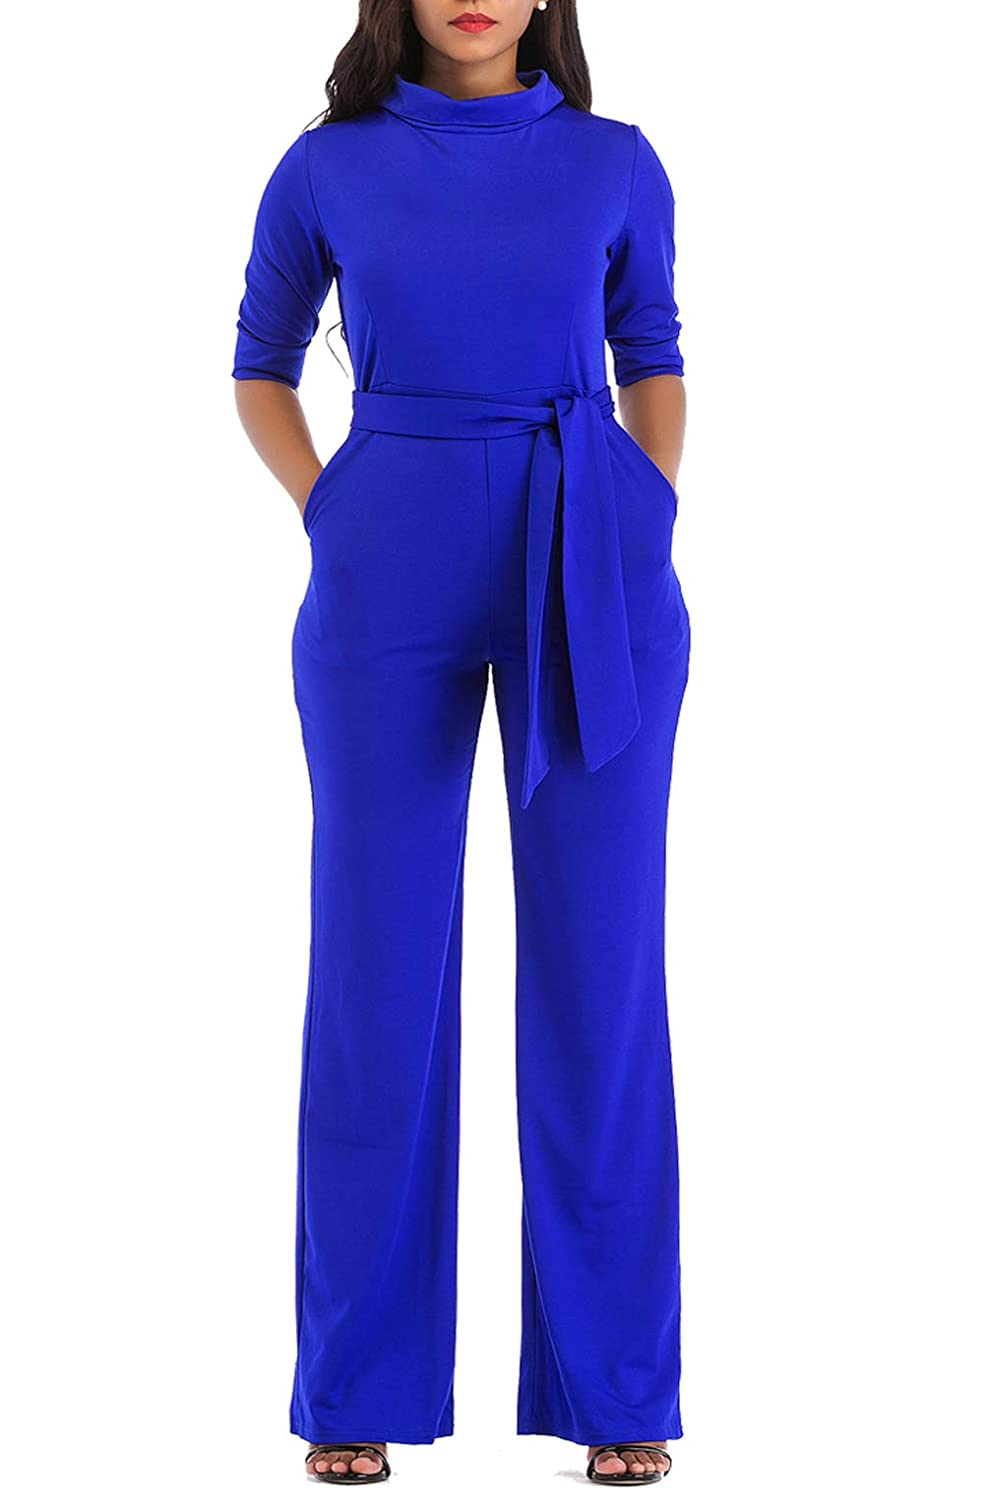 KISSMODA Womens Elegant Wide Leg Work Jumpsuits Long Fitted Romper Pants Half Sleeve with Belt - Blue - XL: Amazon.co.uk: Clothing